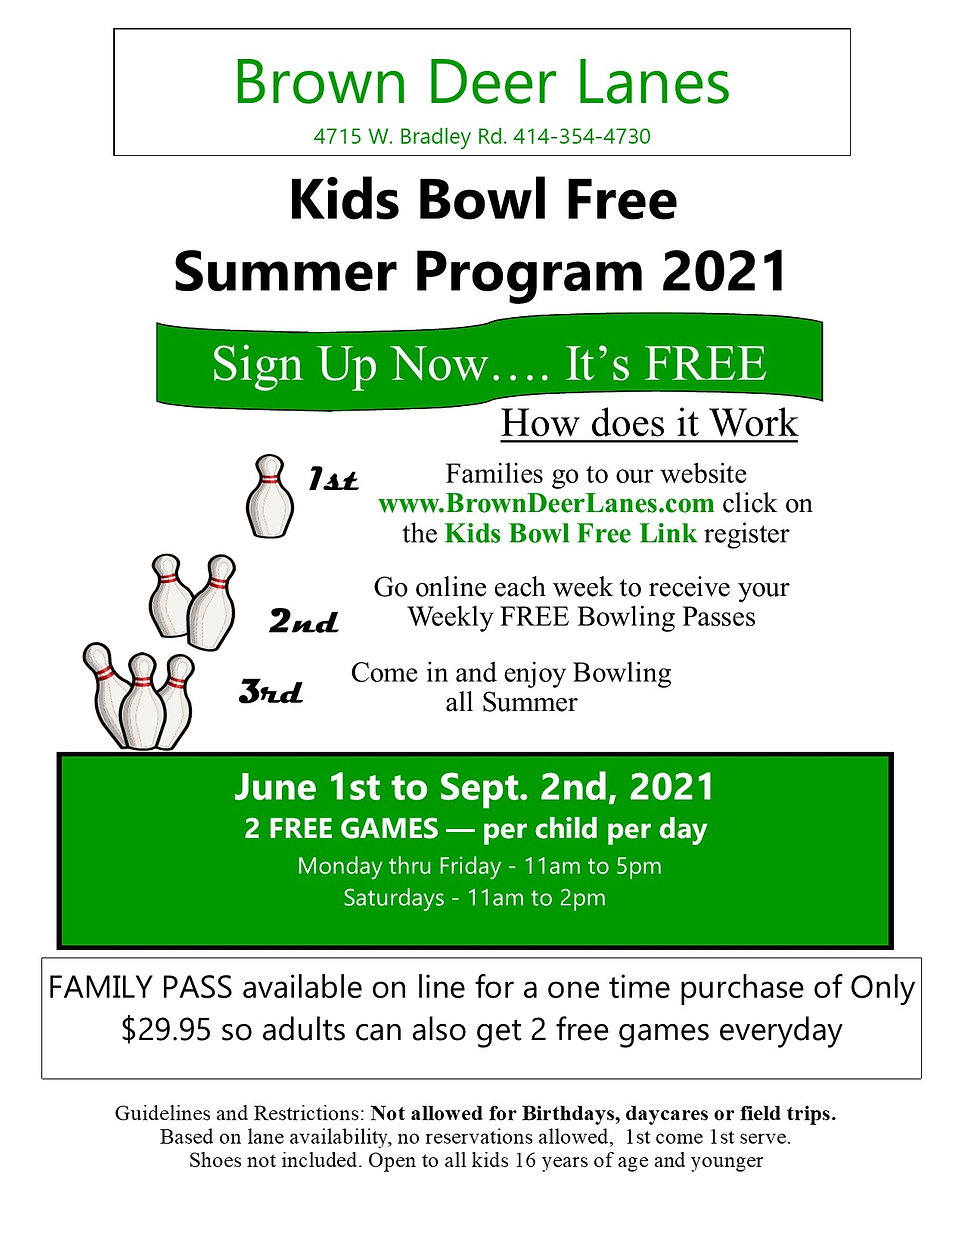 BDL Flyer for Kids Bowl Free 2021 Colore